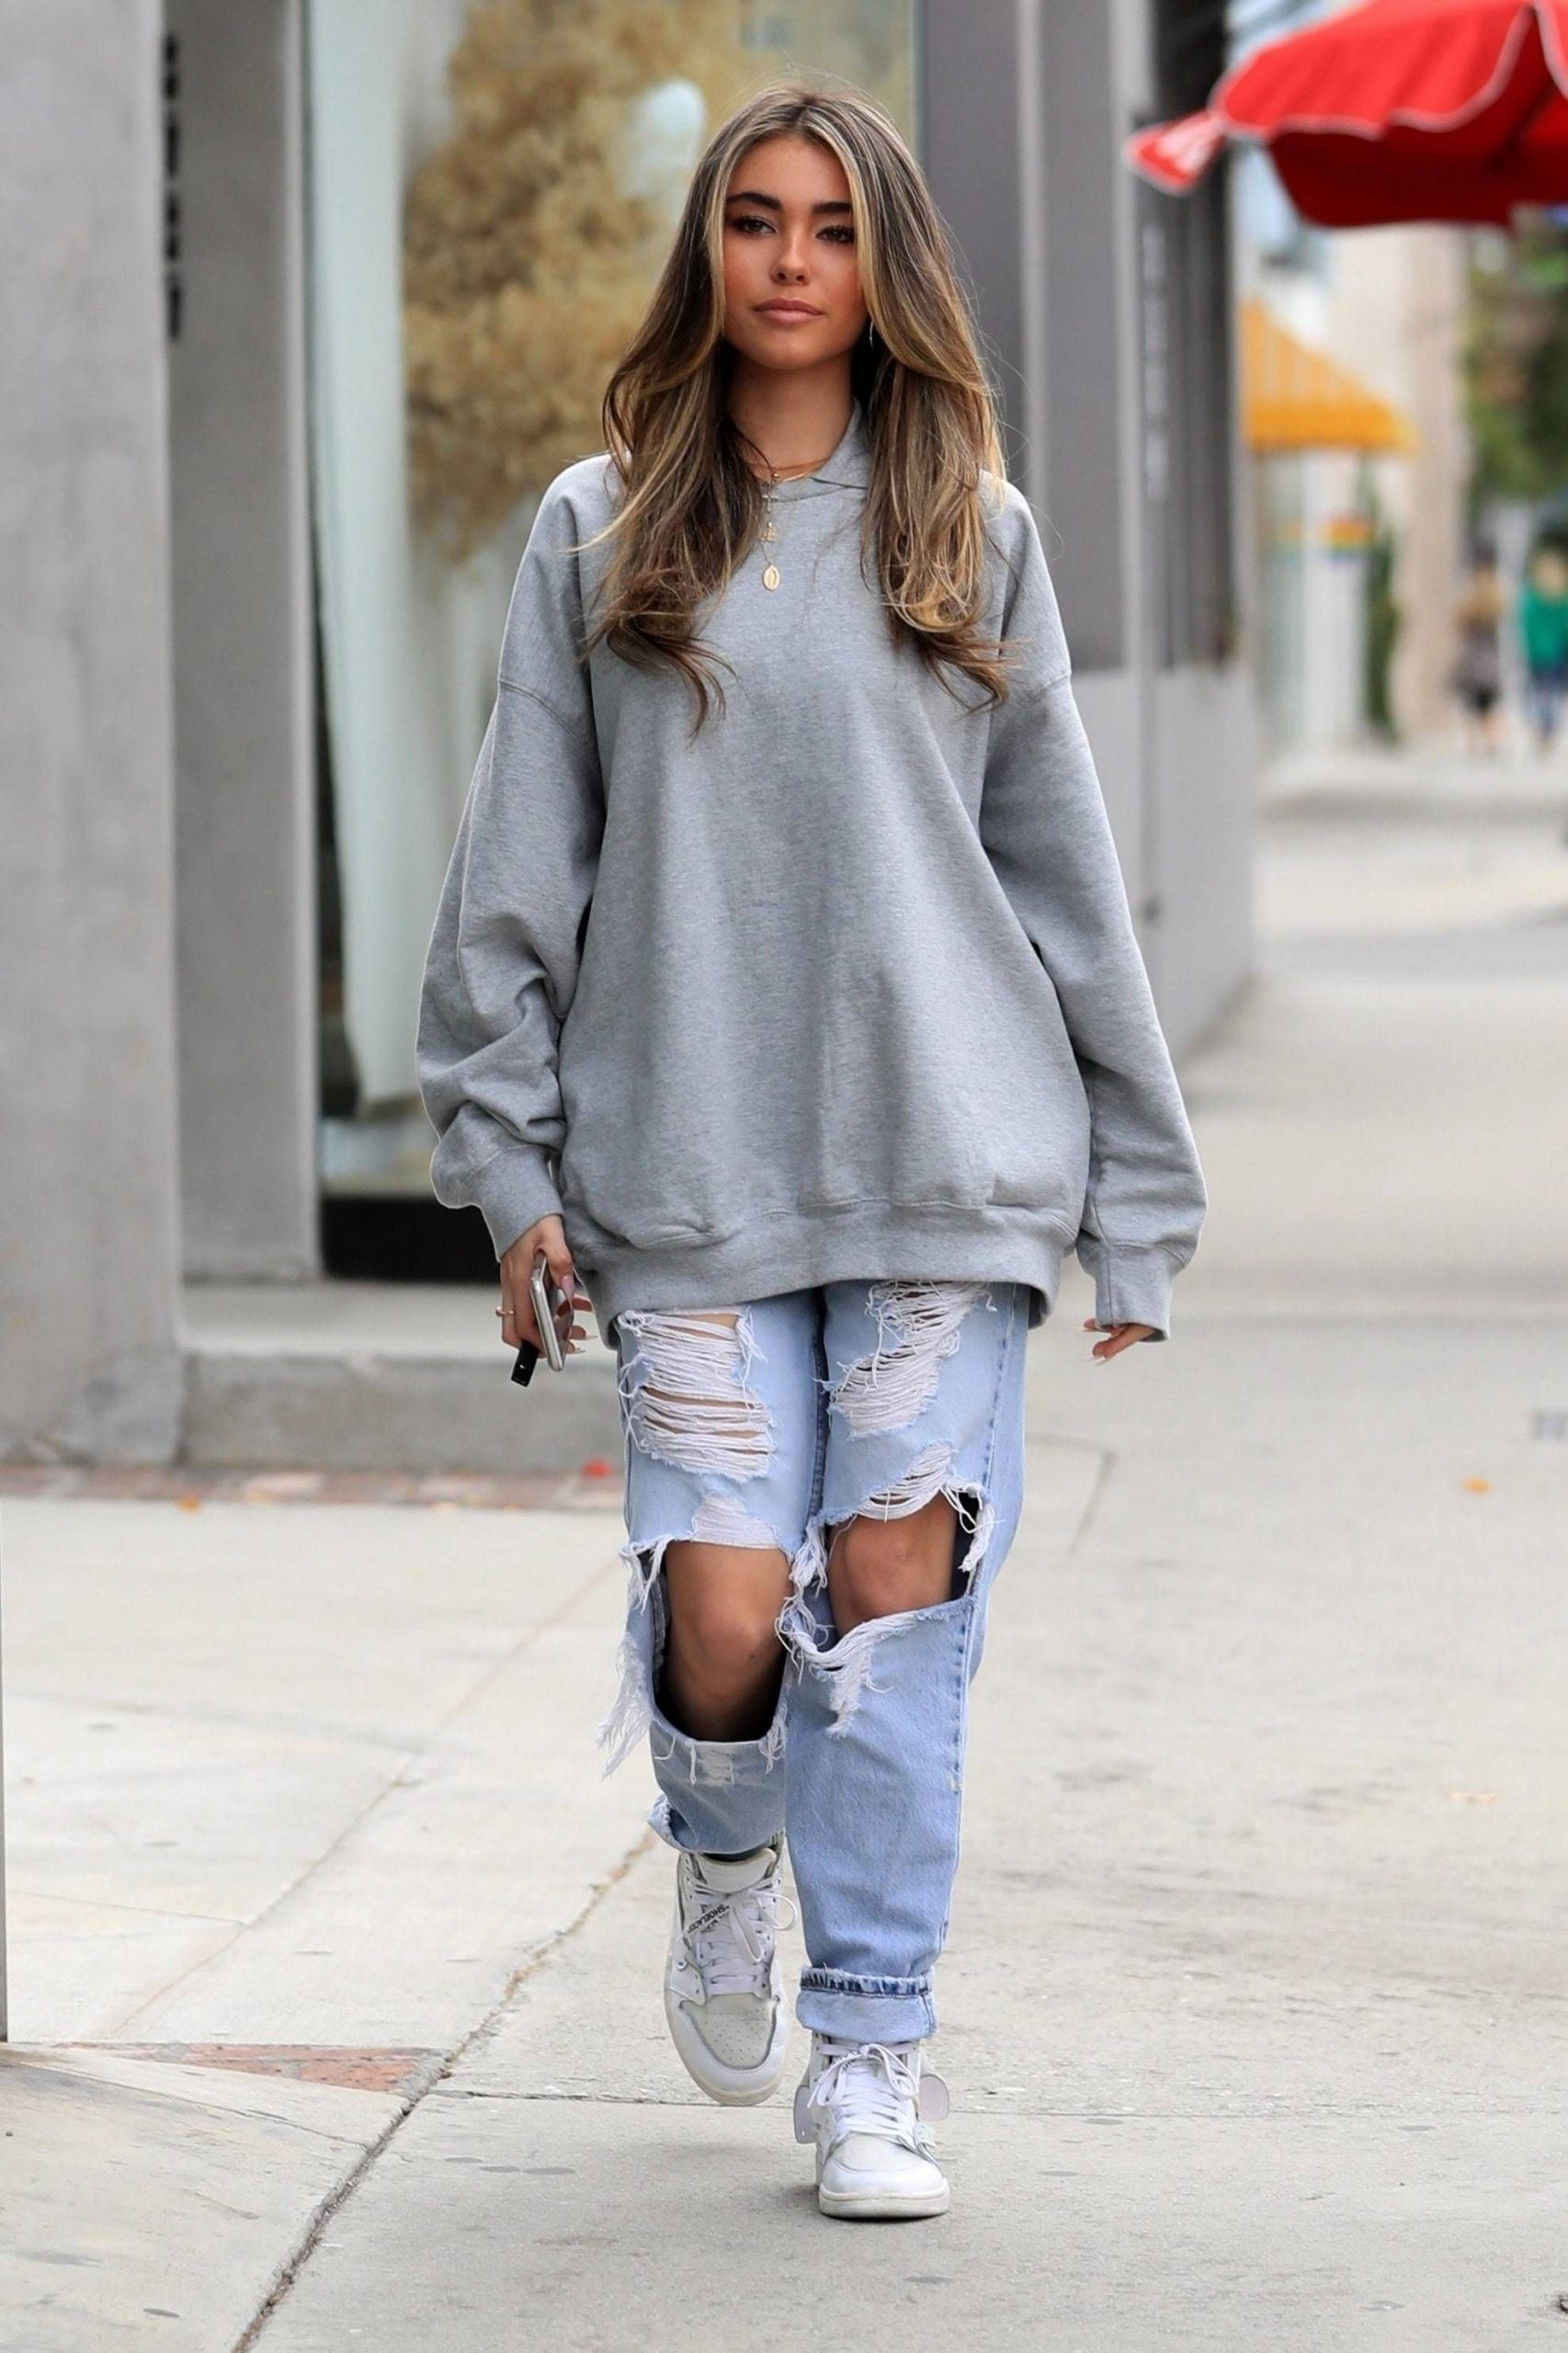 Clothing ideas madison beer outfits, street fashion, fashion model, ripped jeans, madison beer,  ...